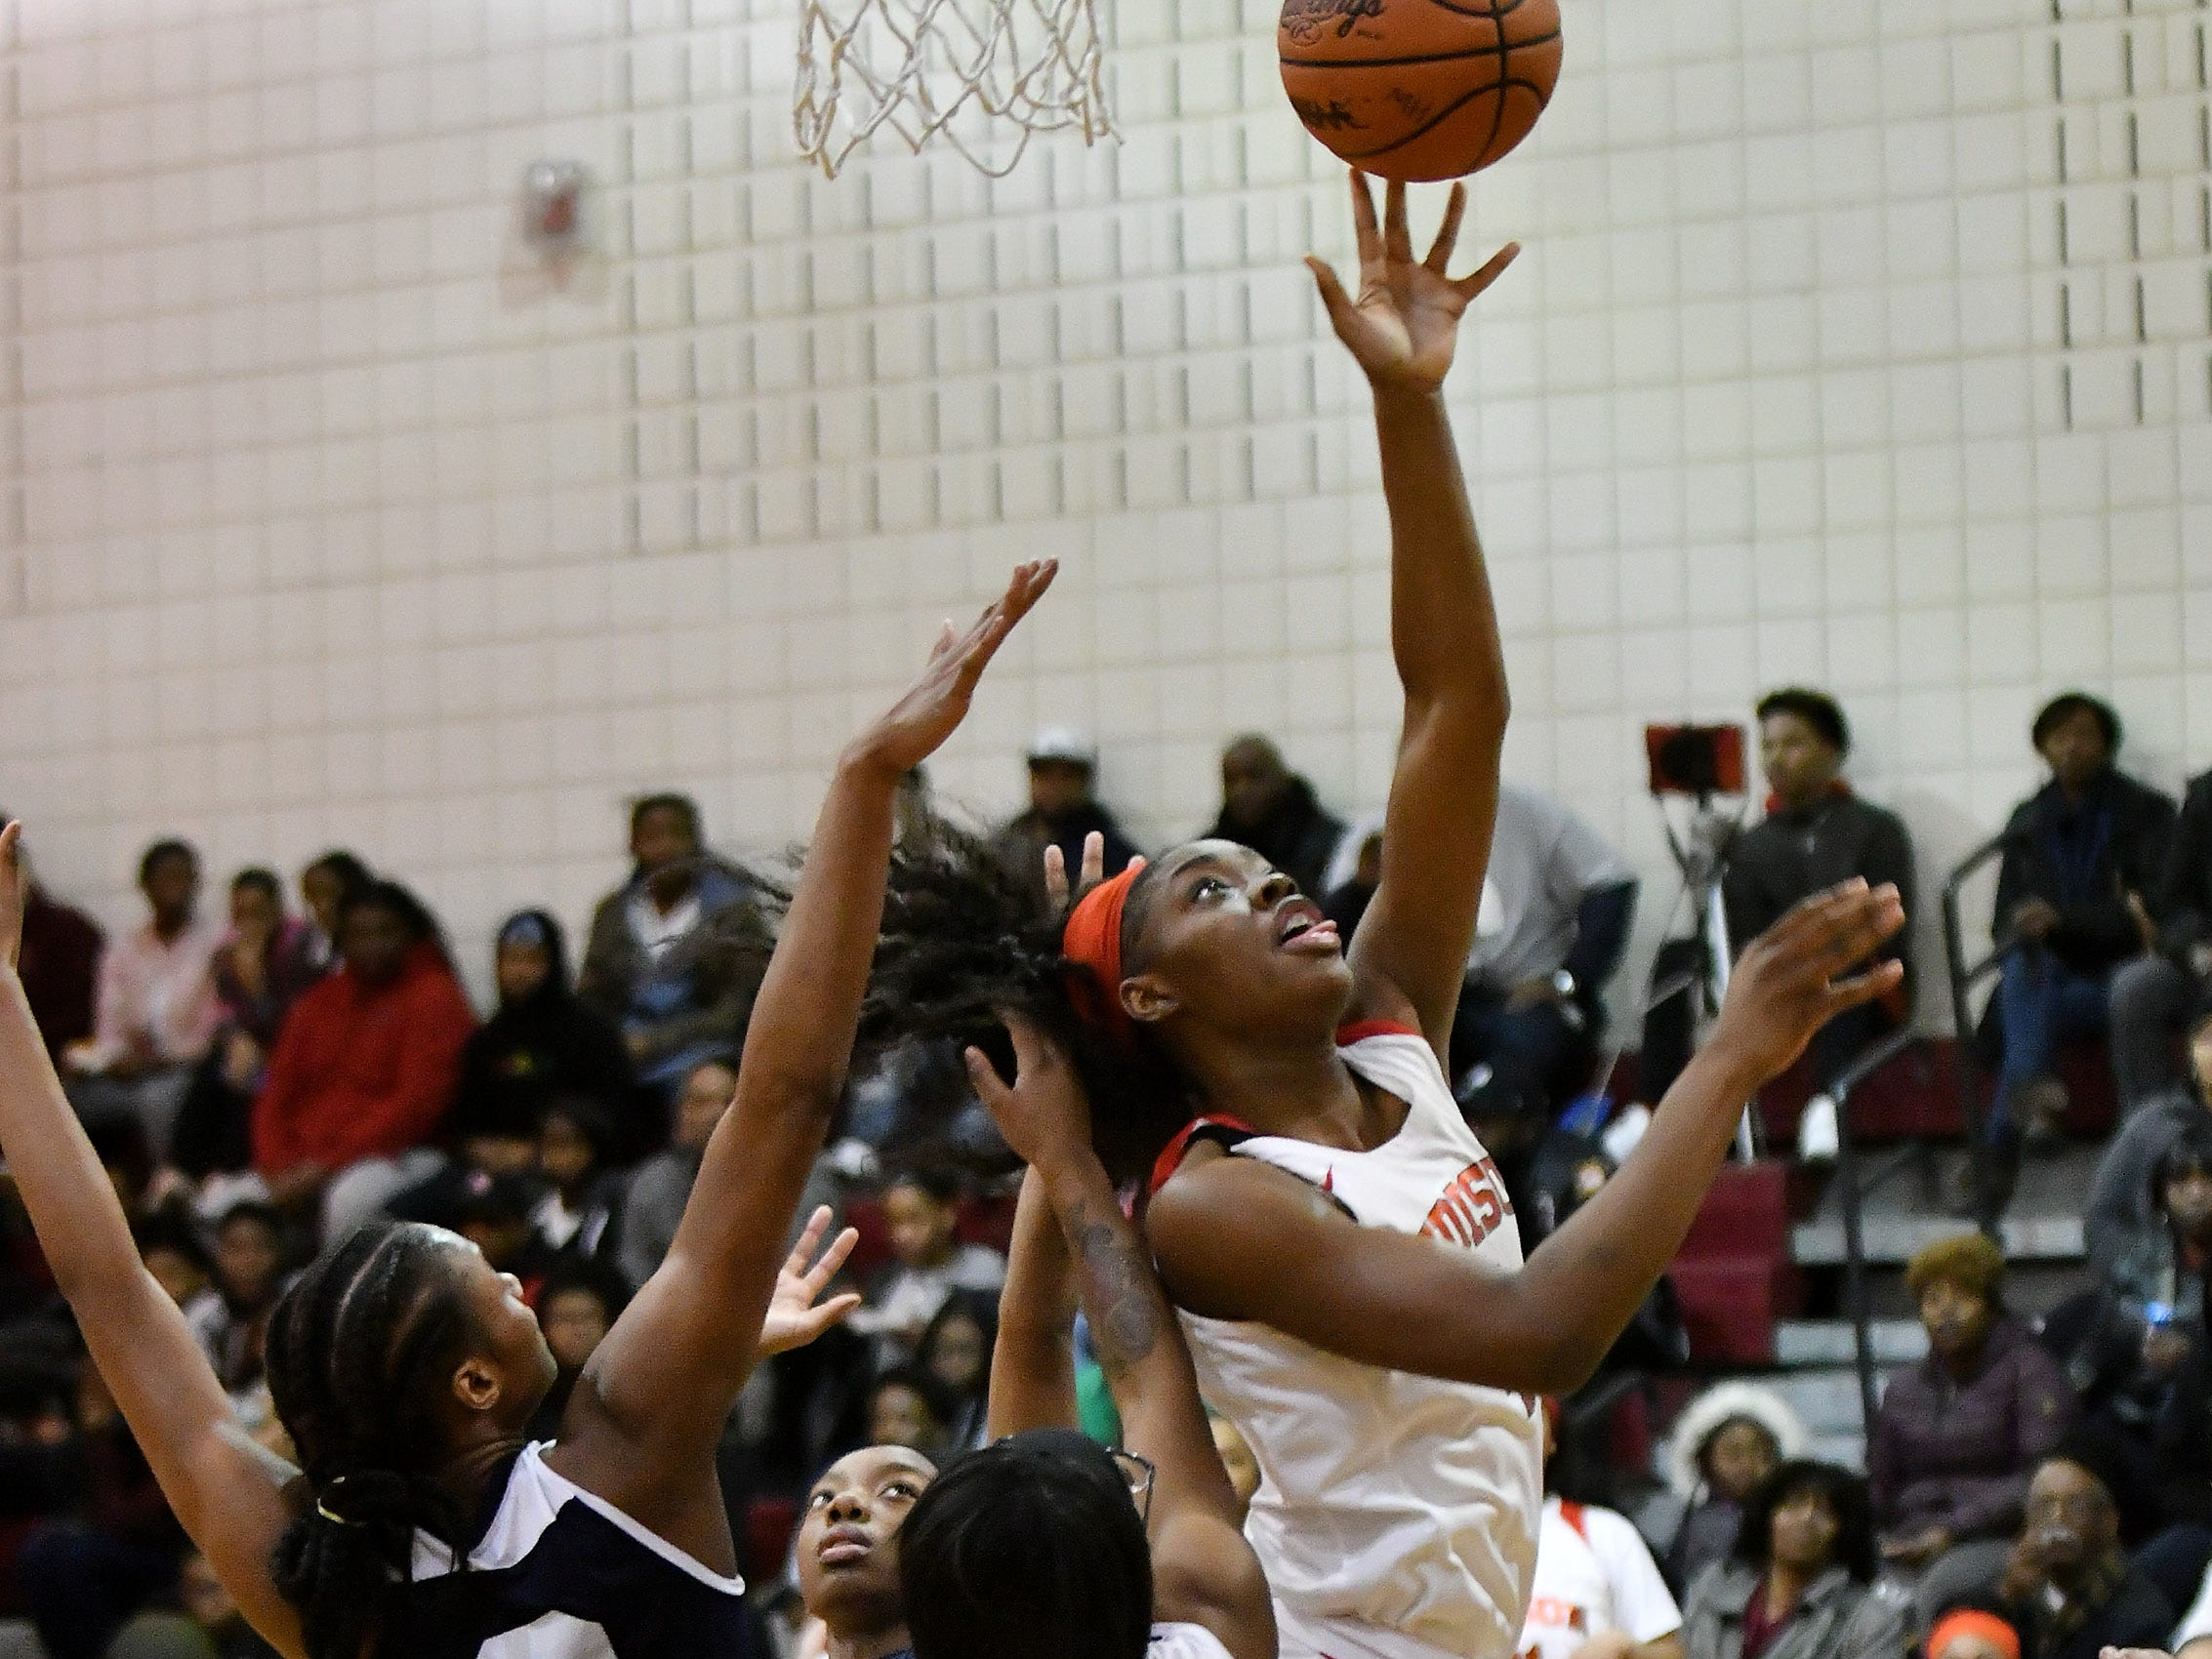 Detroit Edison's Ariel Jenkins puts up a shot amidst Chandler Park's Tiana Mason (2) and Anaya Kennedy (5) in the second half.